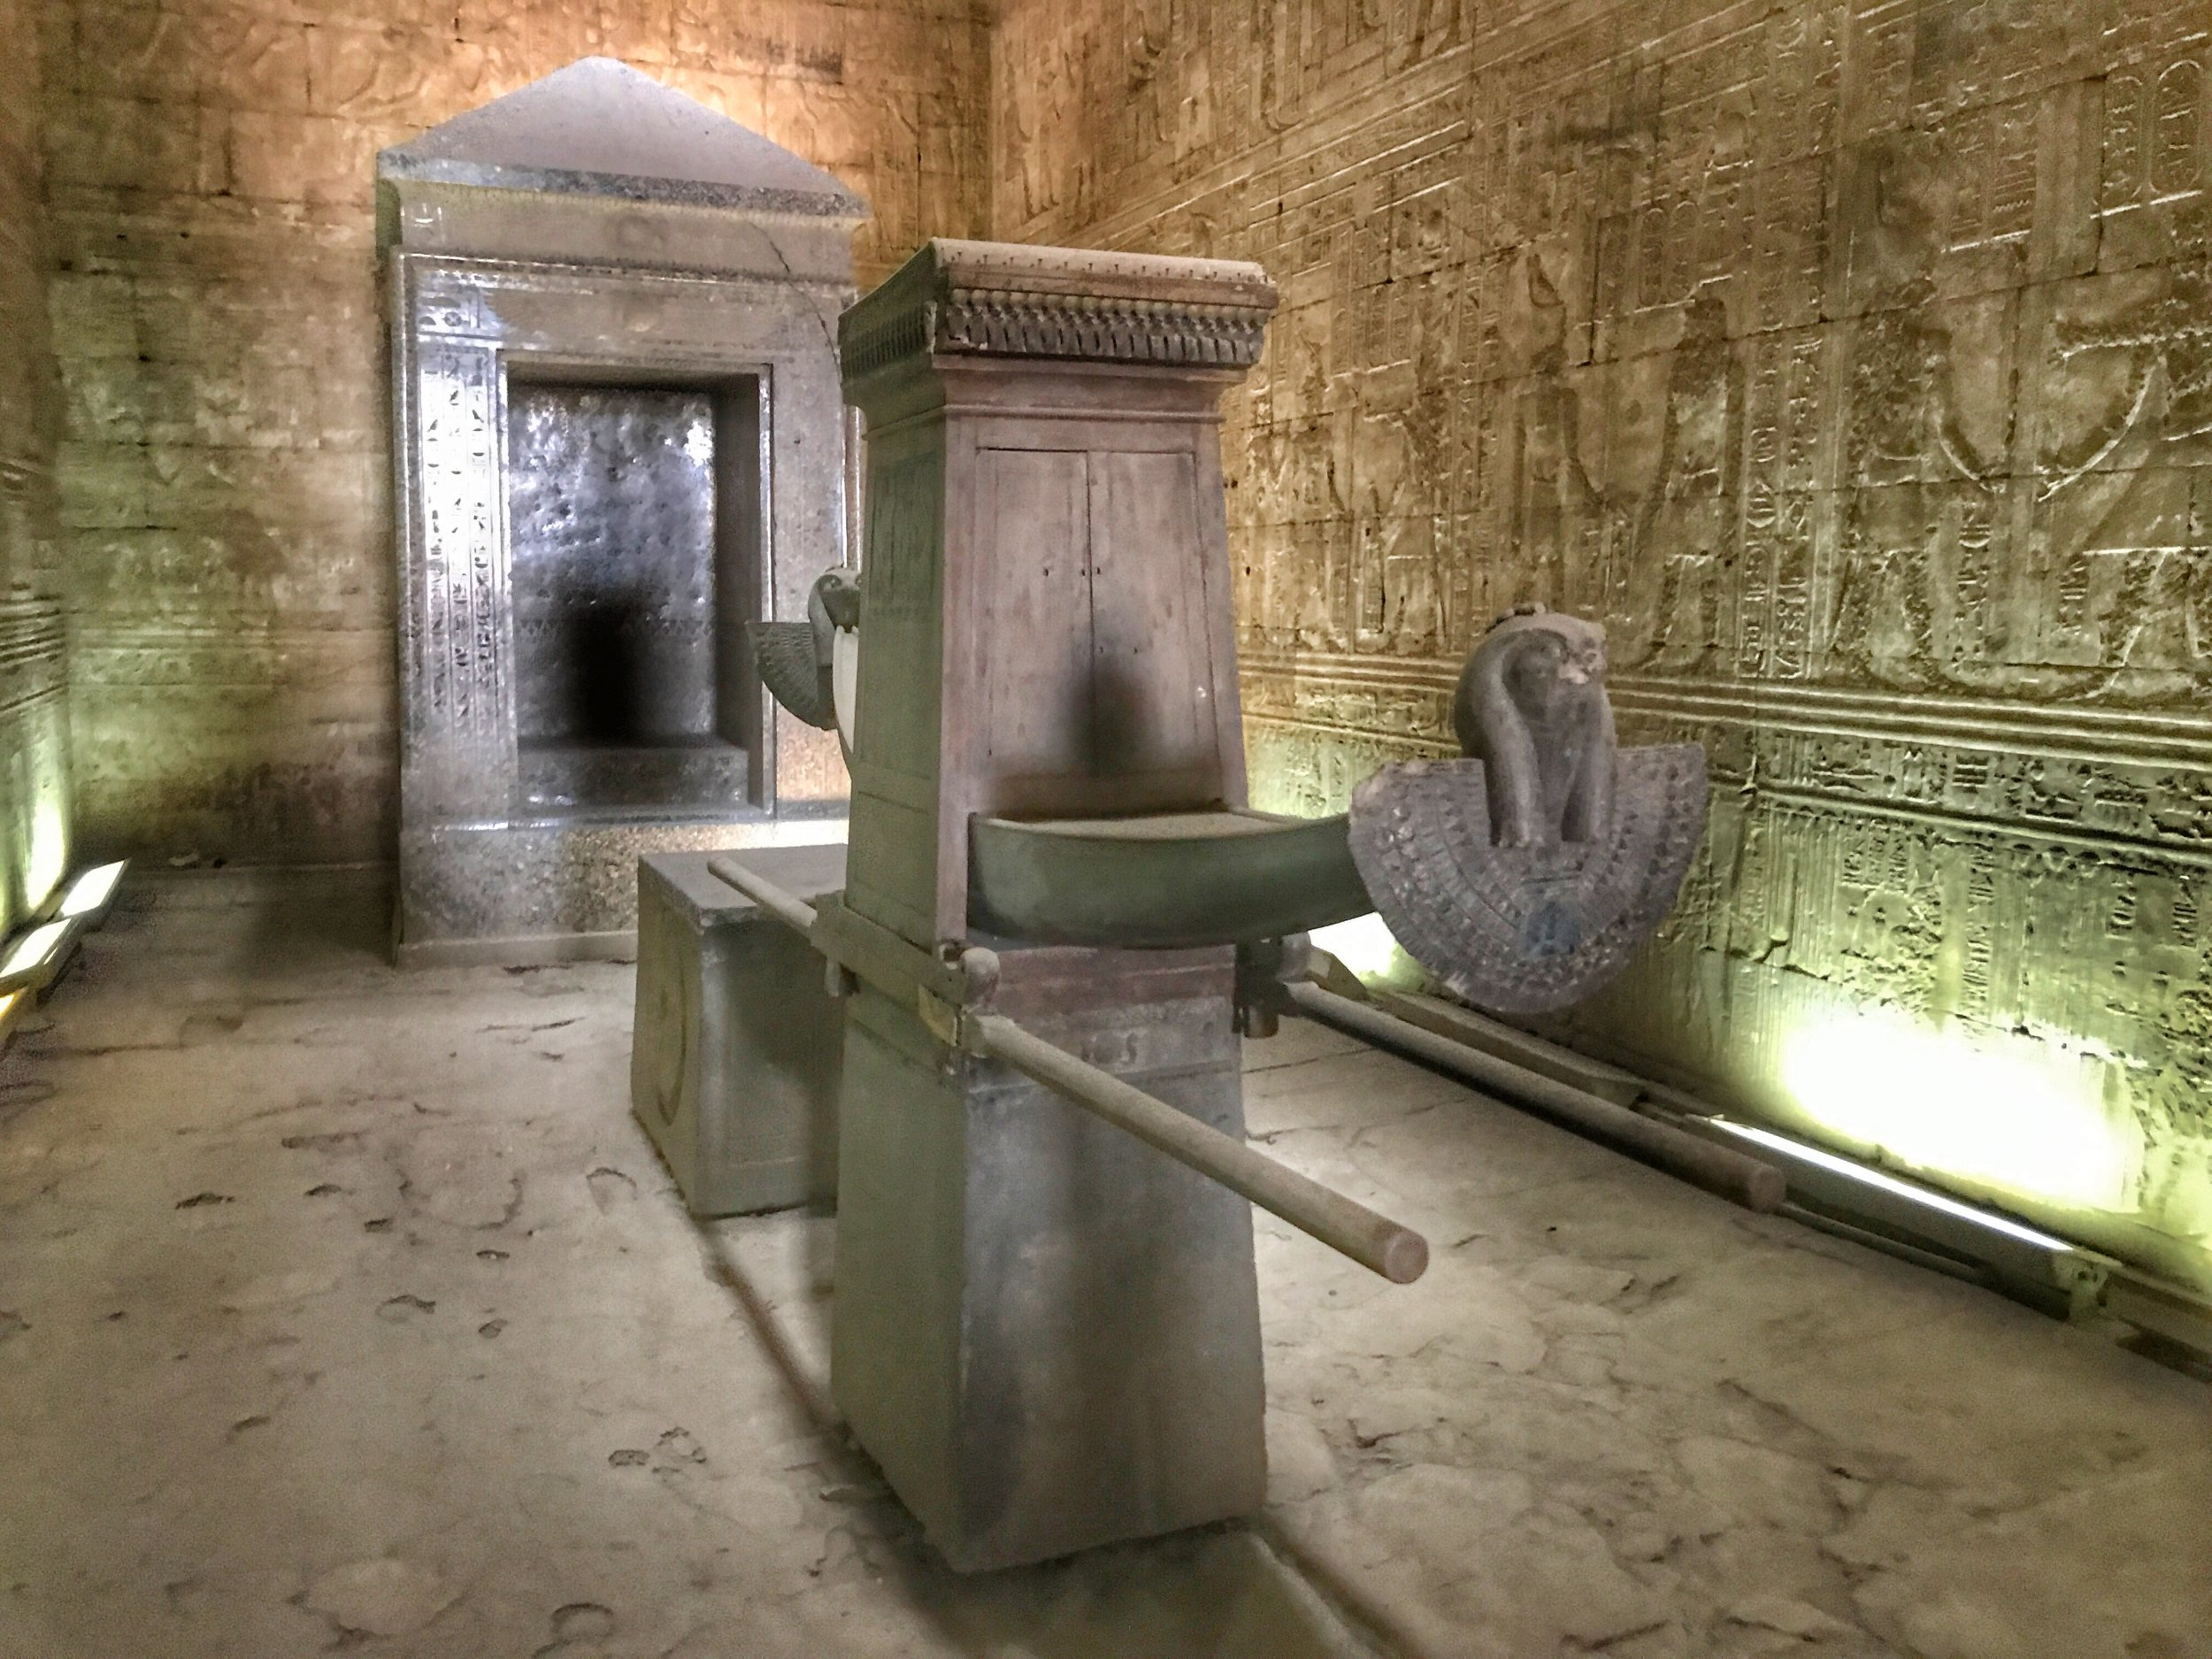 During the Festival of the Beautiful Meeting, the statue of Horus was carried out of the sanctuary on a solar boat like this to reunite with his consort, Hathor, who traveled down the Nile from Dendera